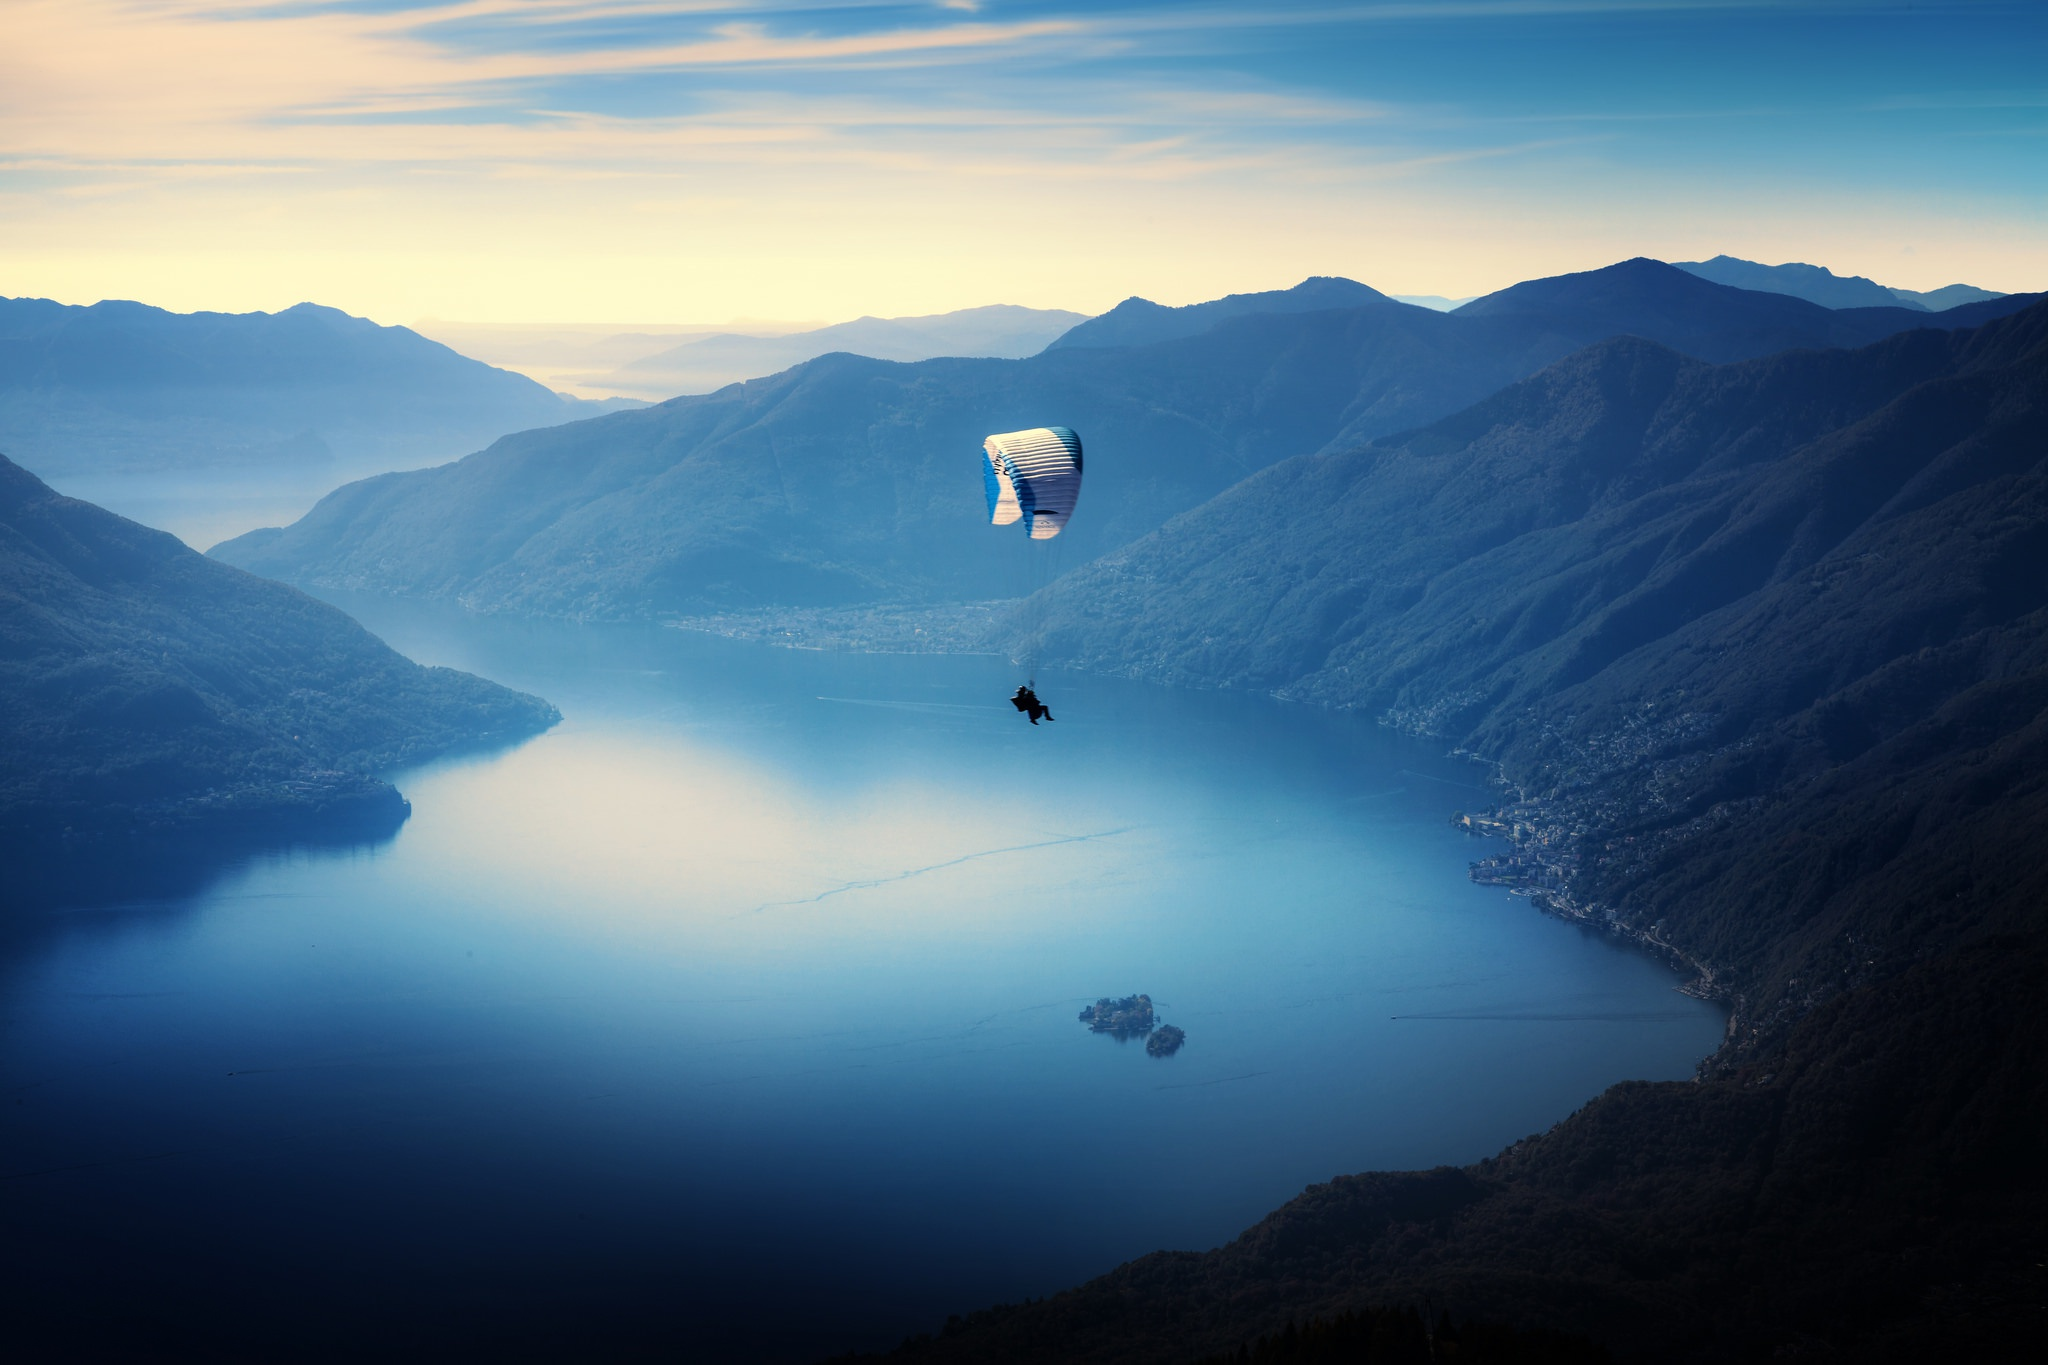 General 2048x1365 blue mountains water nature parachutes landscape cyan calm island